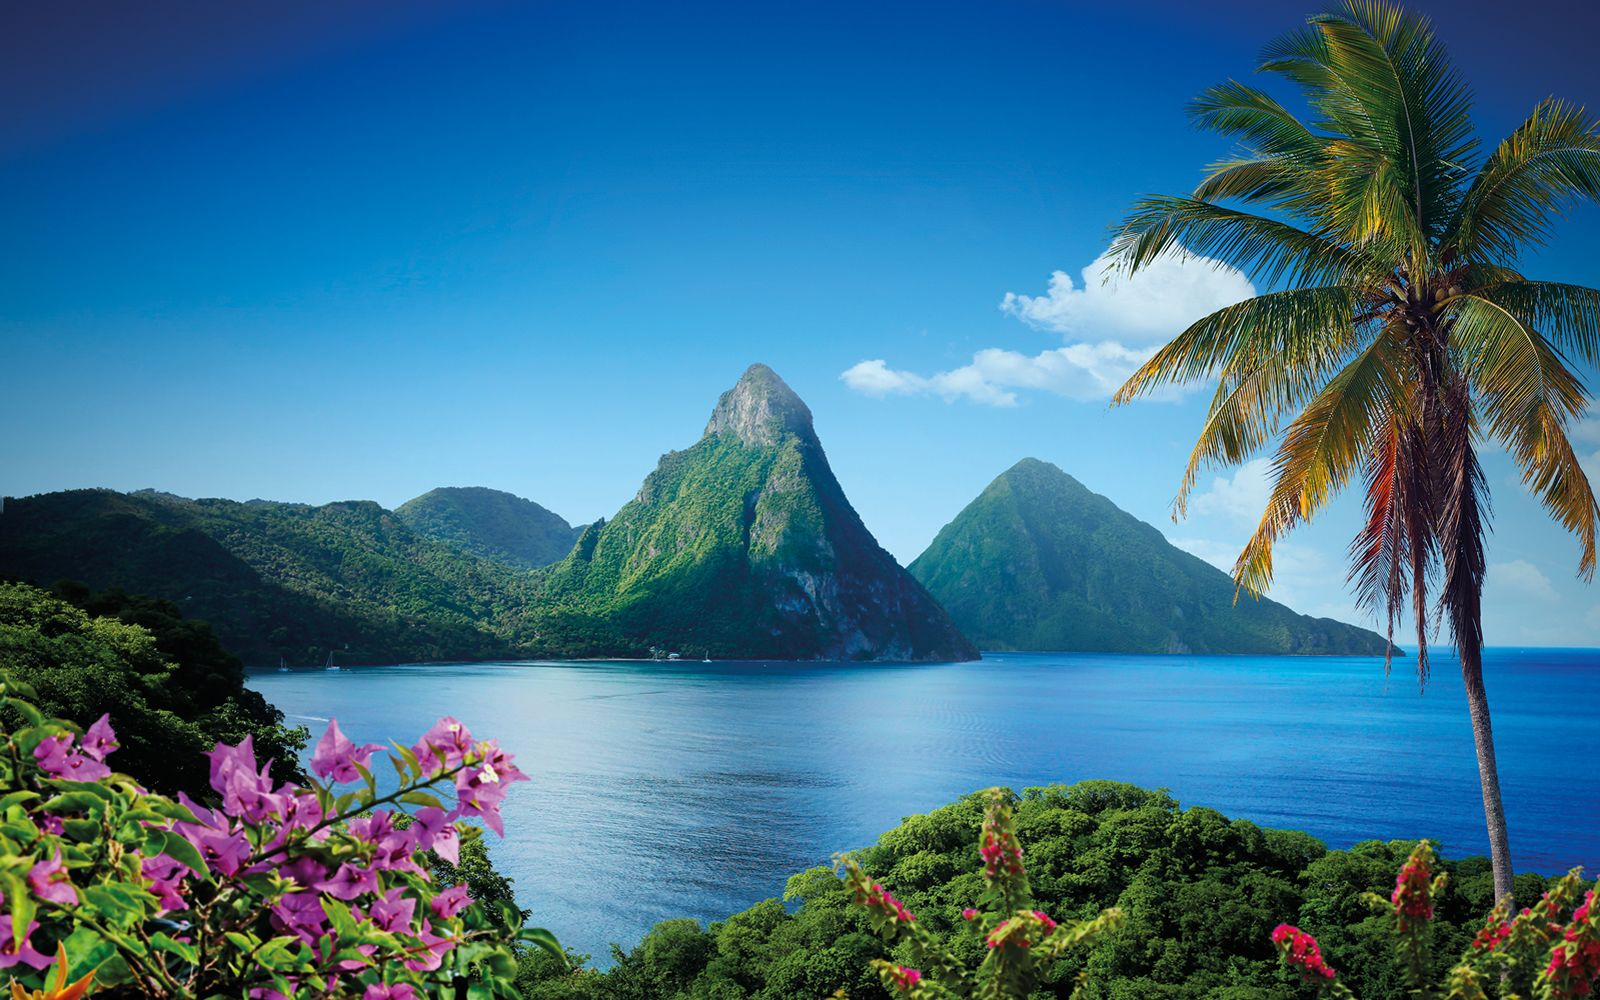 St lucia villa apartments fleewinter Pretty places around the world